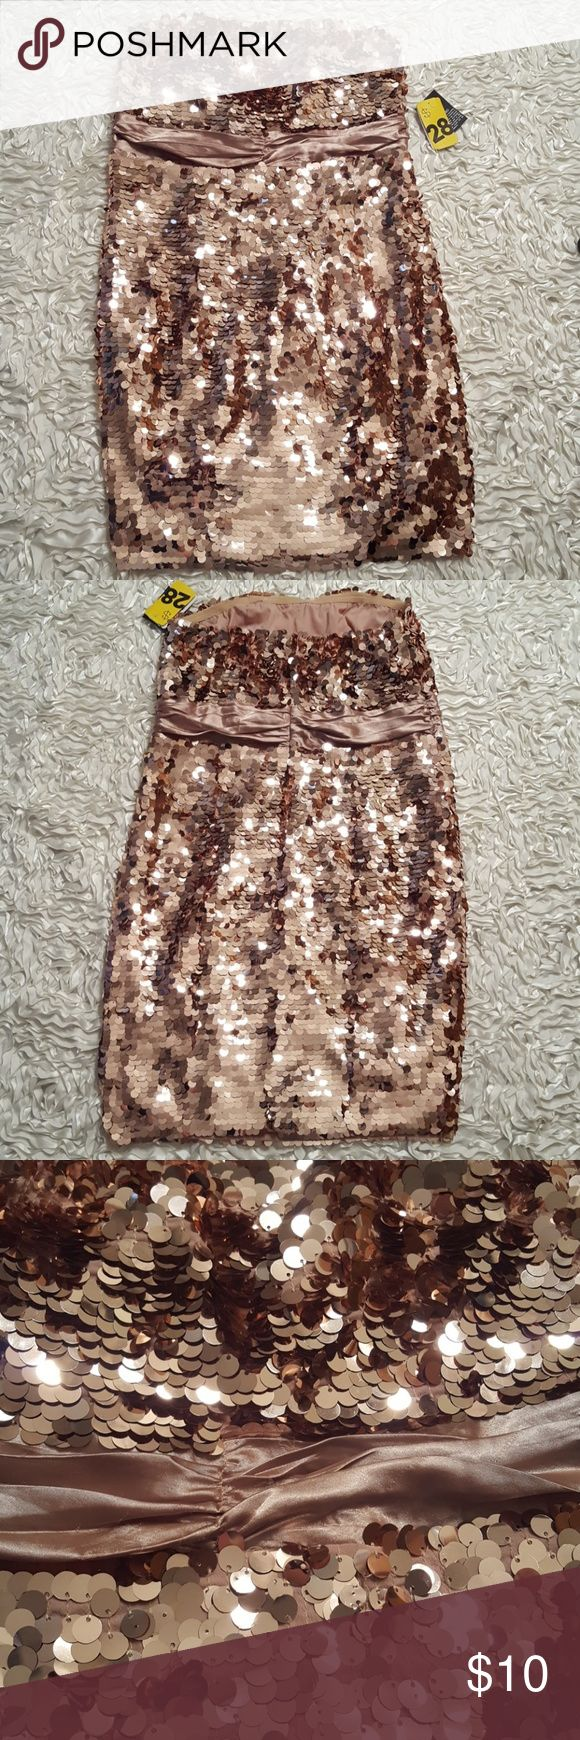 Sequined rose gold strapless cocktail length dress If you want a festive rose gold squined party dress look no further! This strapless number is hot to trot :) There are a few very small snags on the ribbon under the bust but are not noticeable.  NWT, smoke free home. Forever 21 Dresses